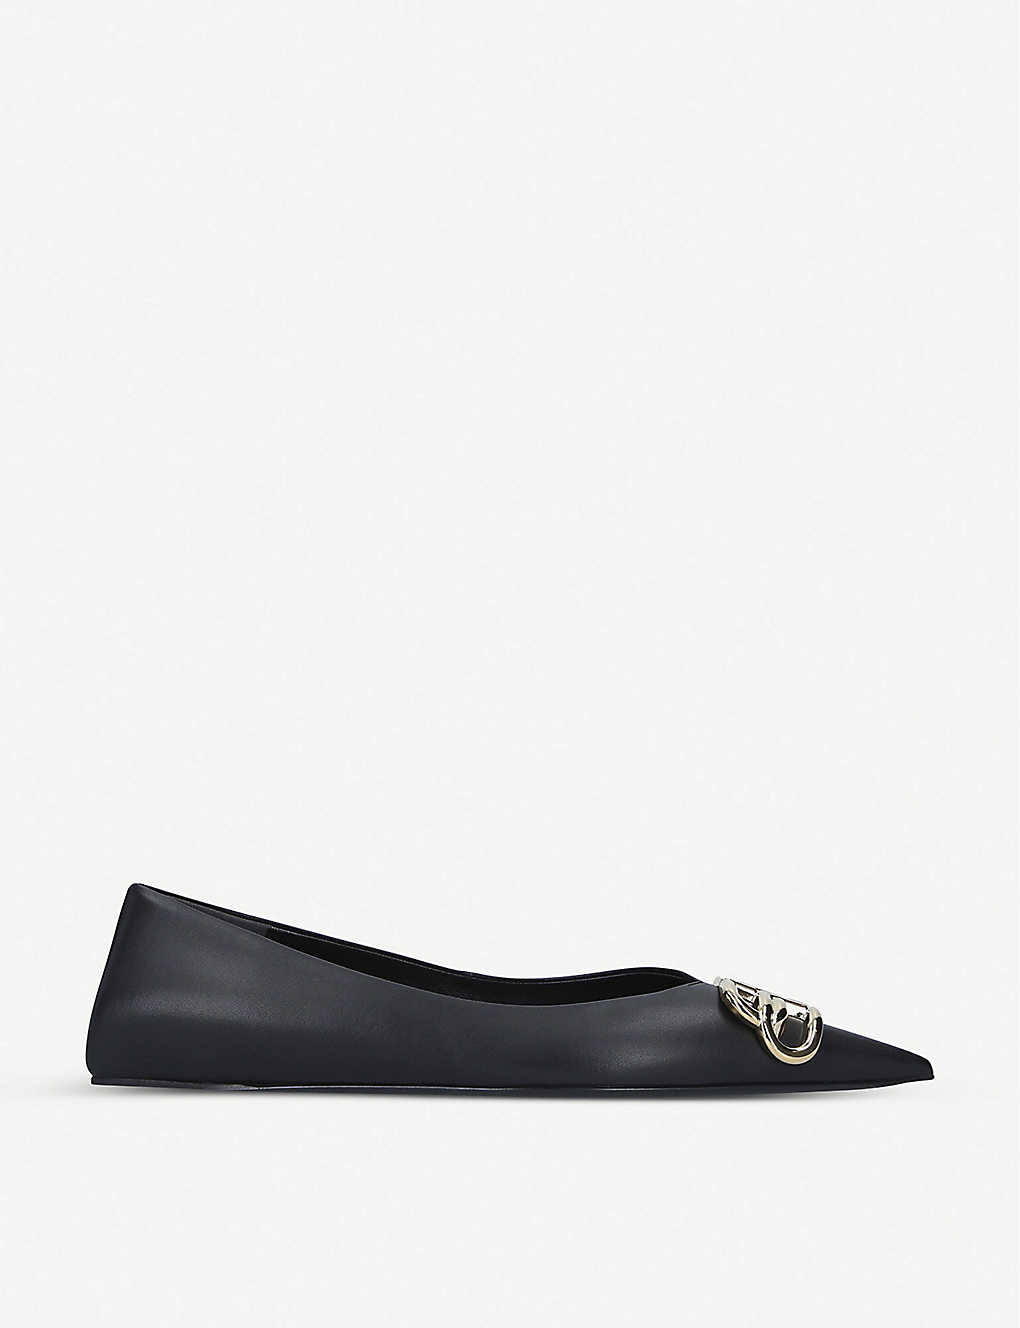 BALENCIAGA: Knife leather ballet flats